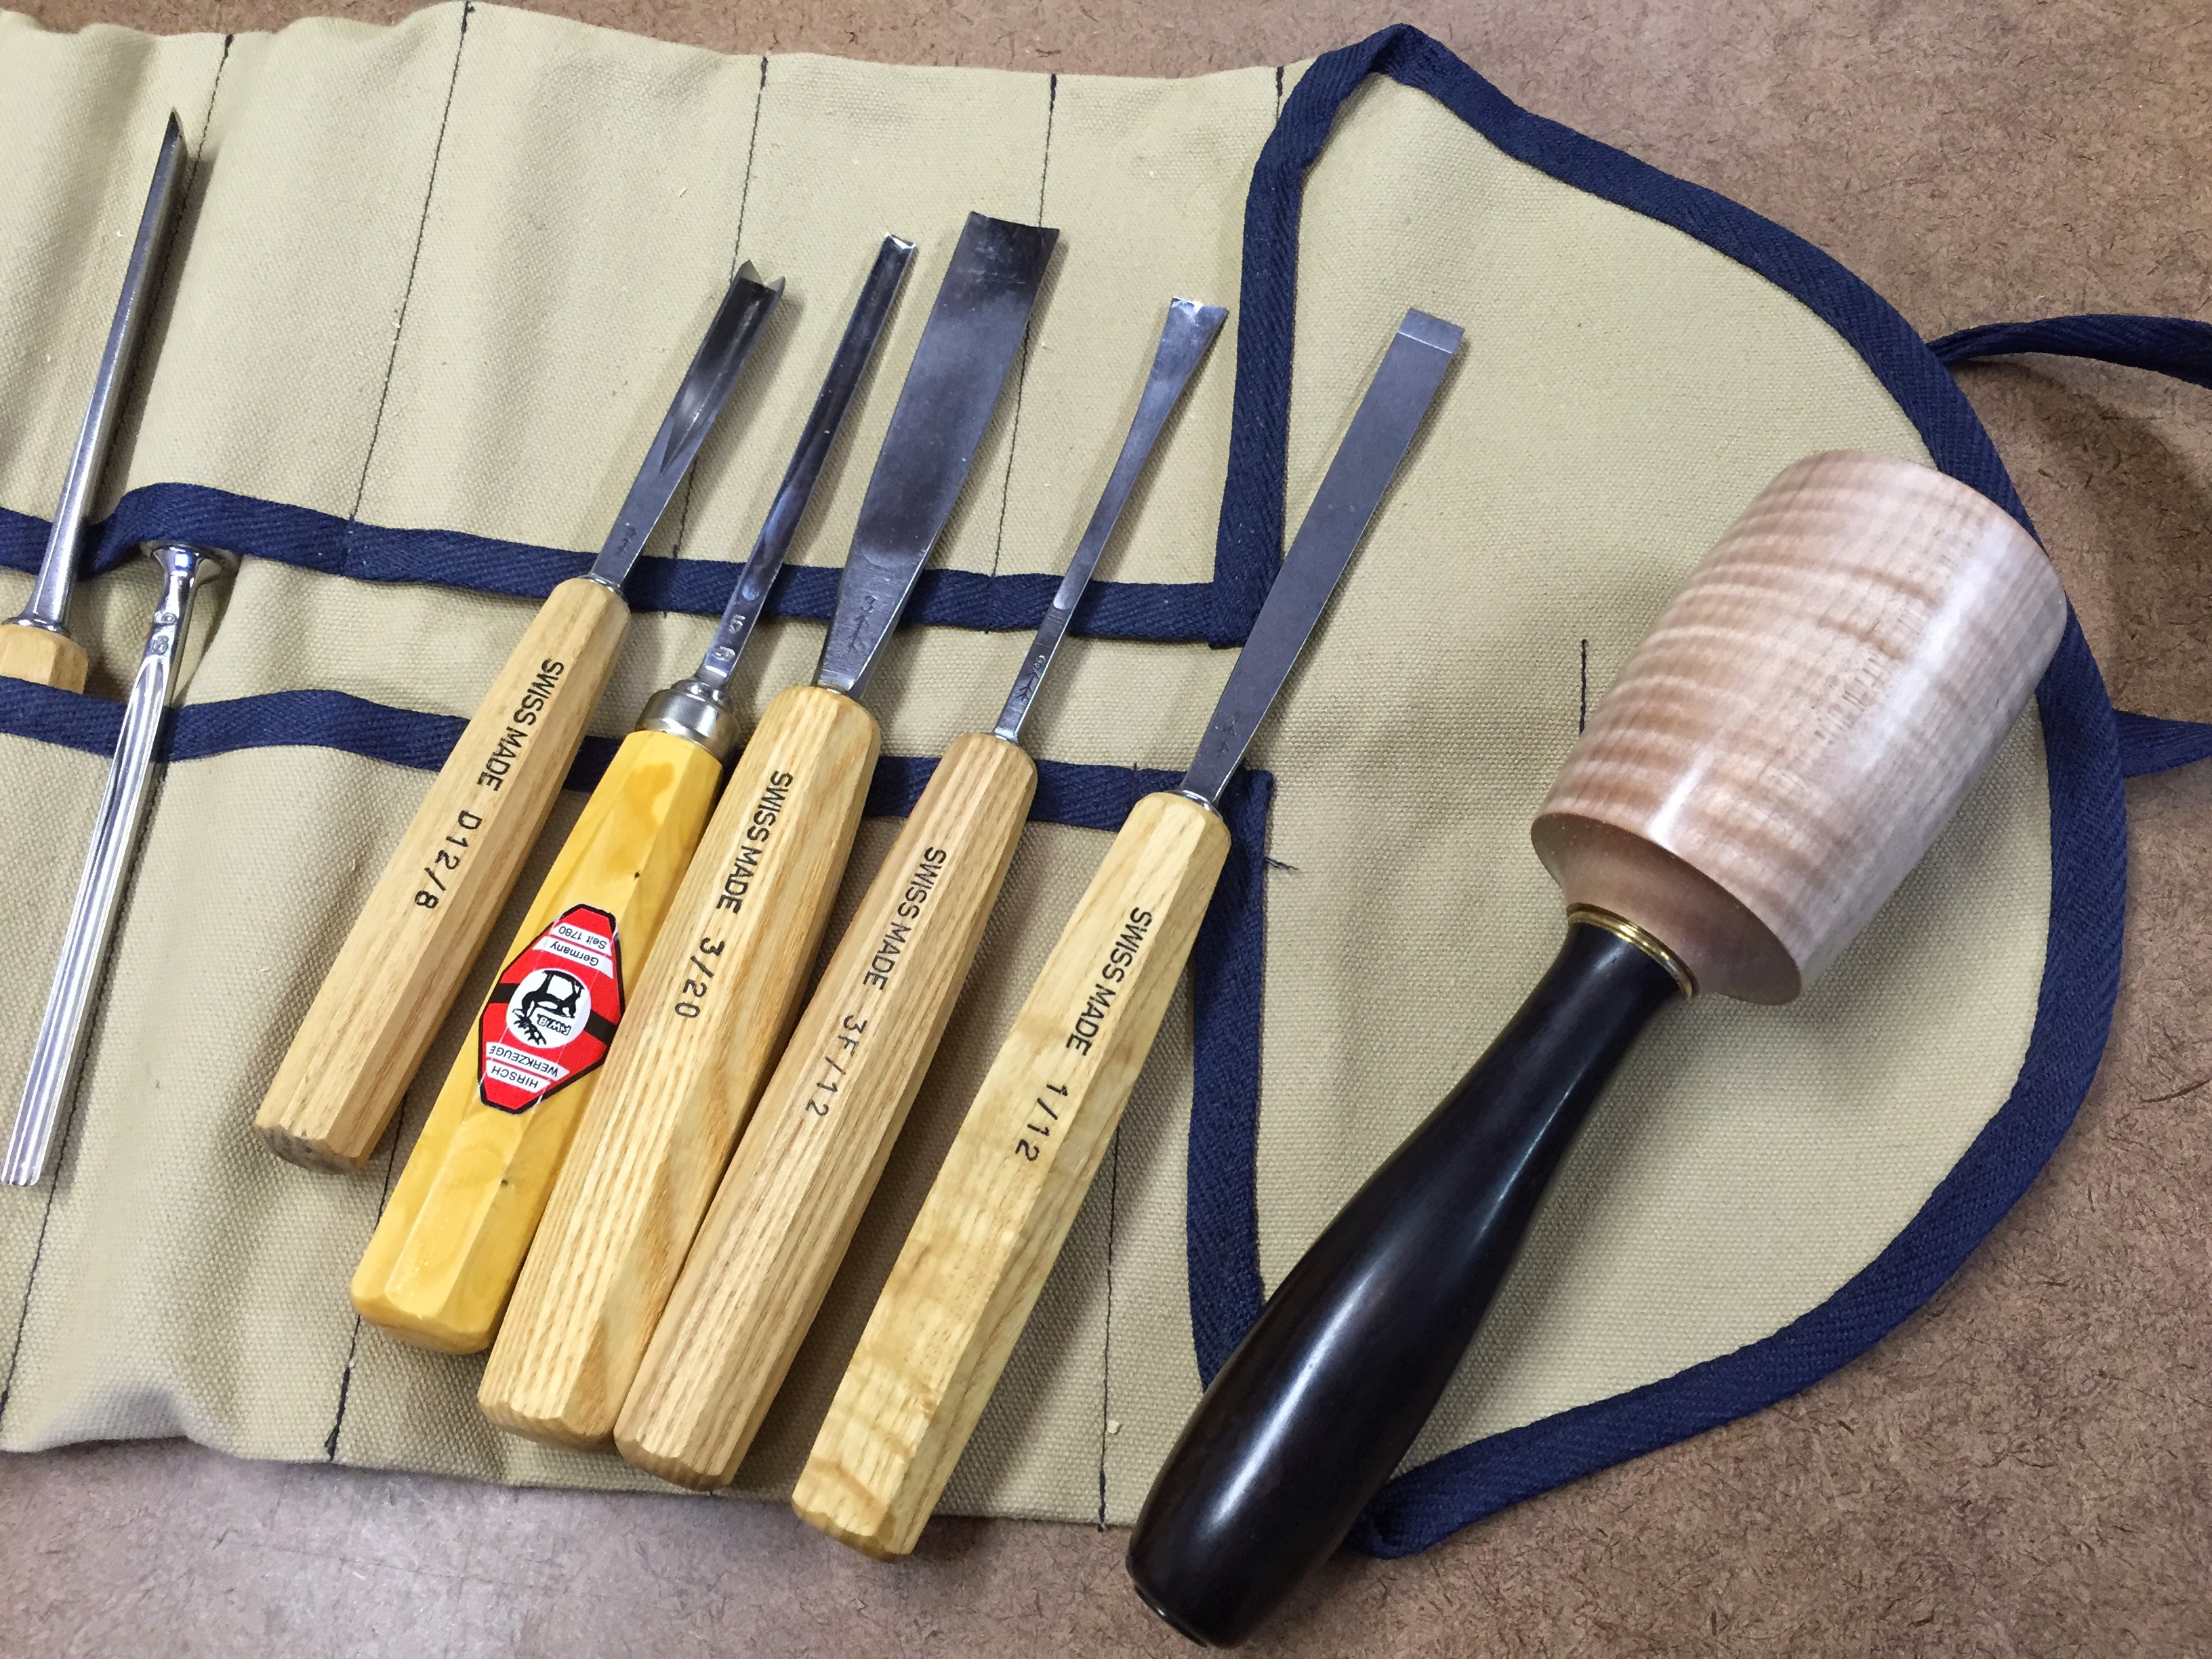 Primarily used these 5 tools and the mallet